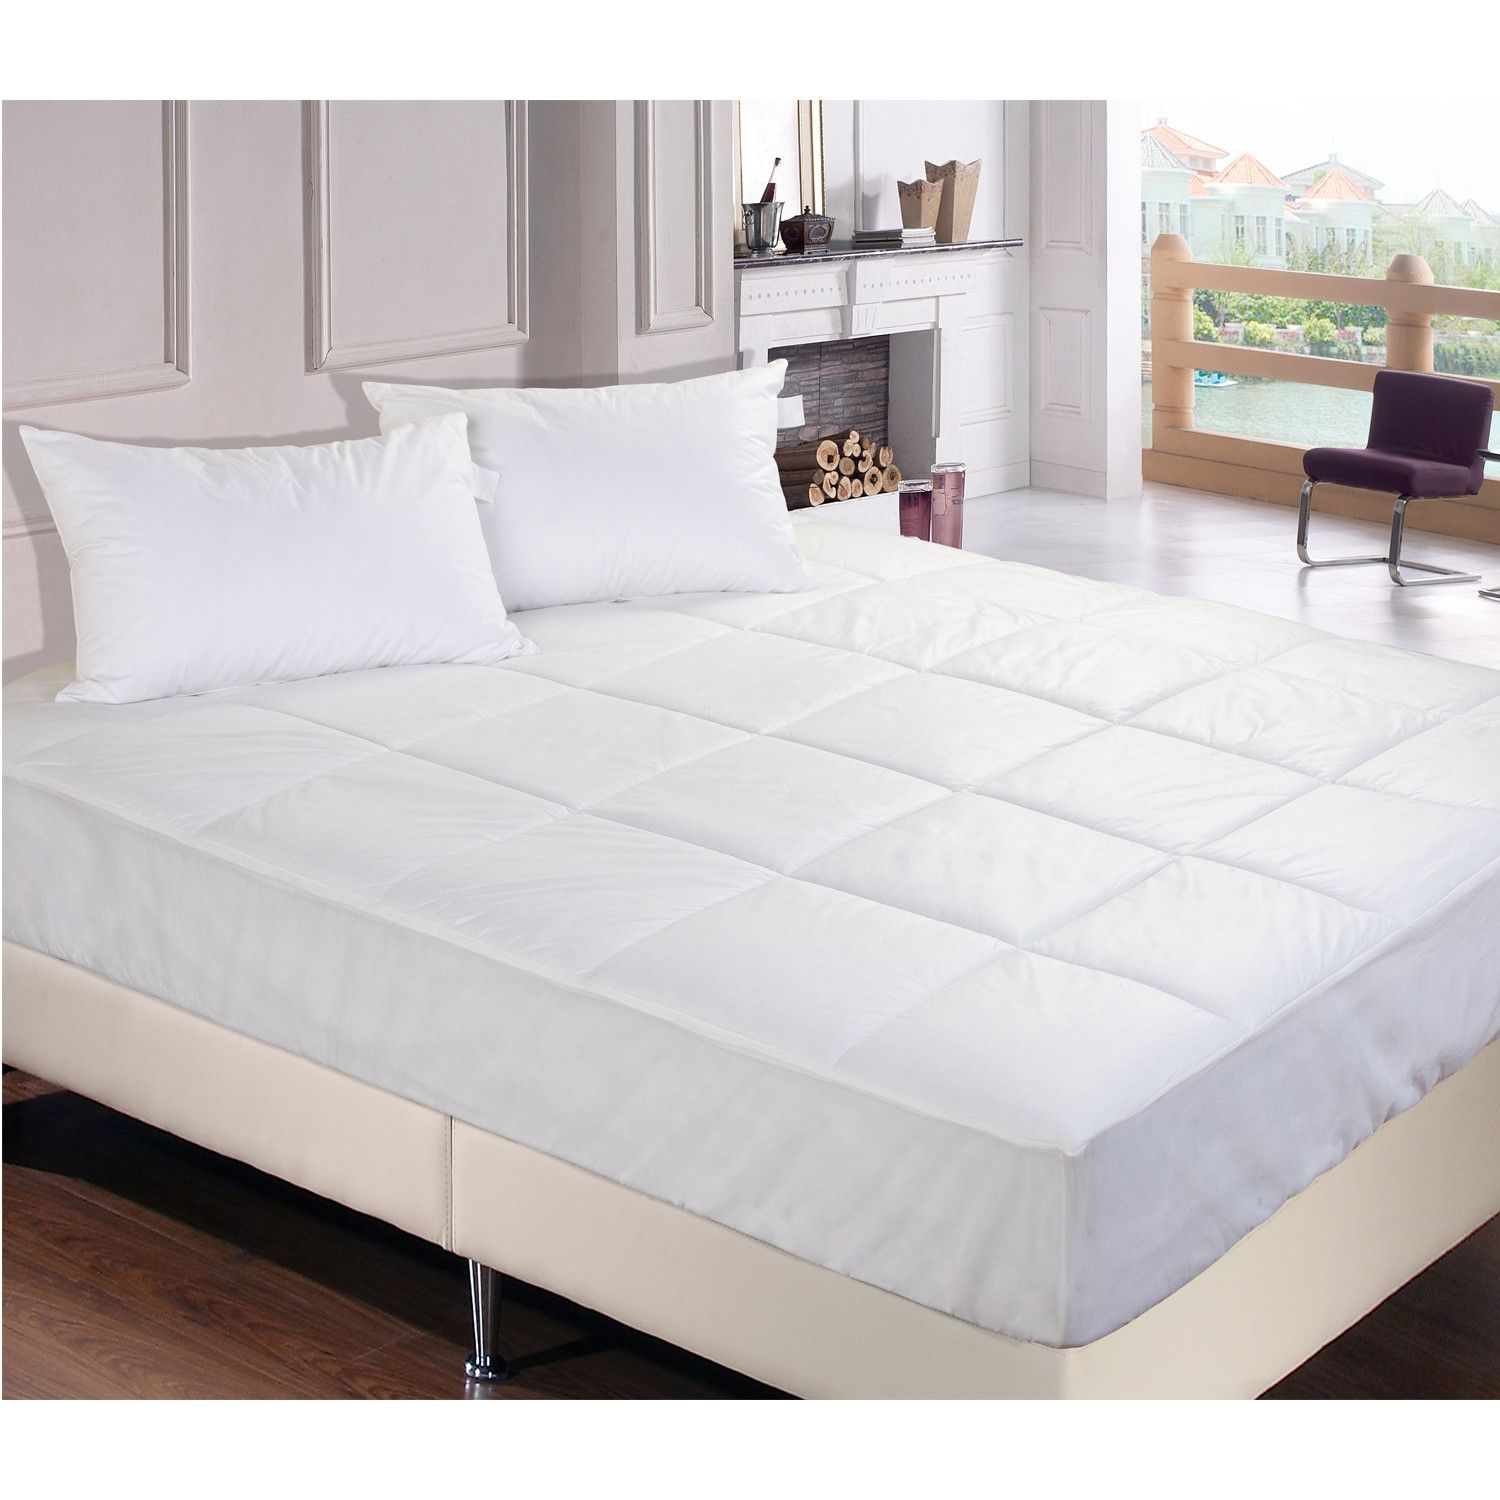 "Trahan 3"" Down Alternative Mattress Topper Mattress pad"